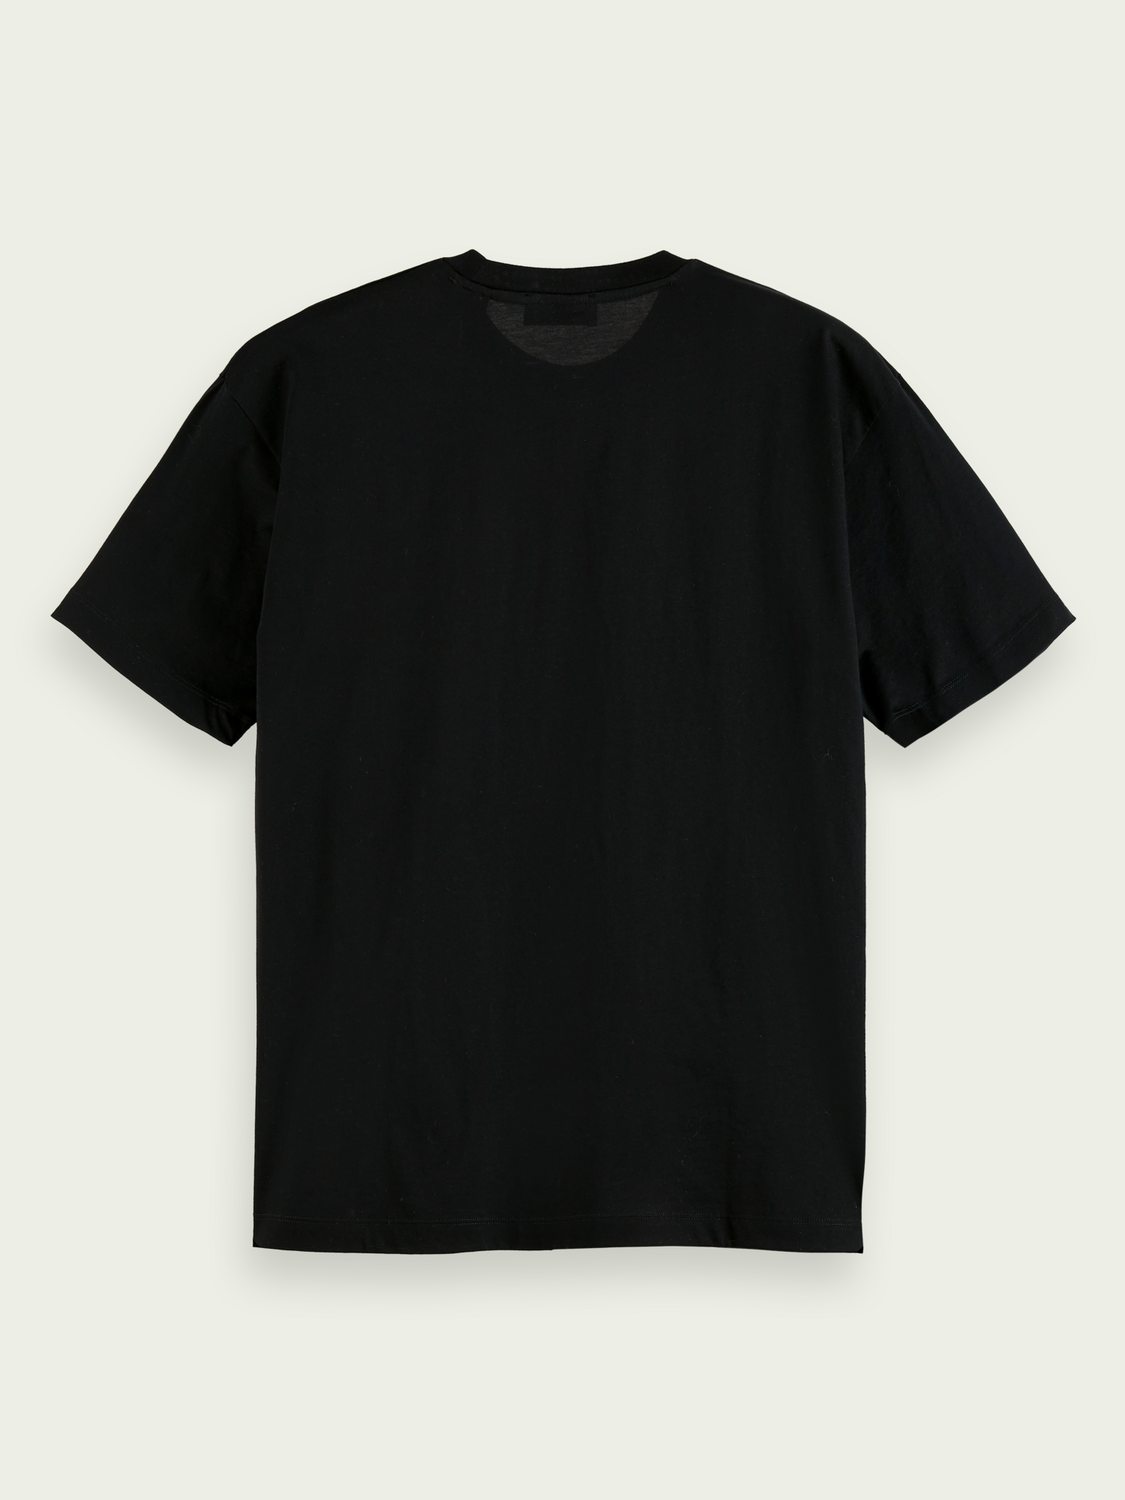 Uomo T-shirt relaxed fit in cotone mercerizzato